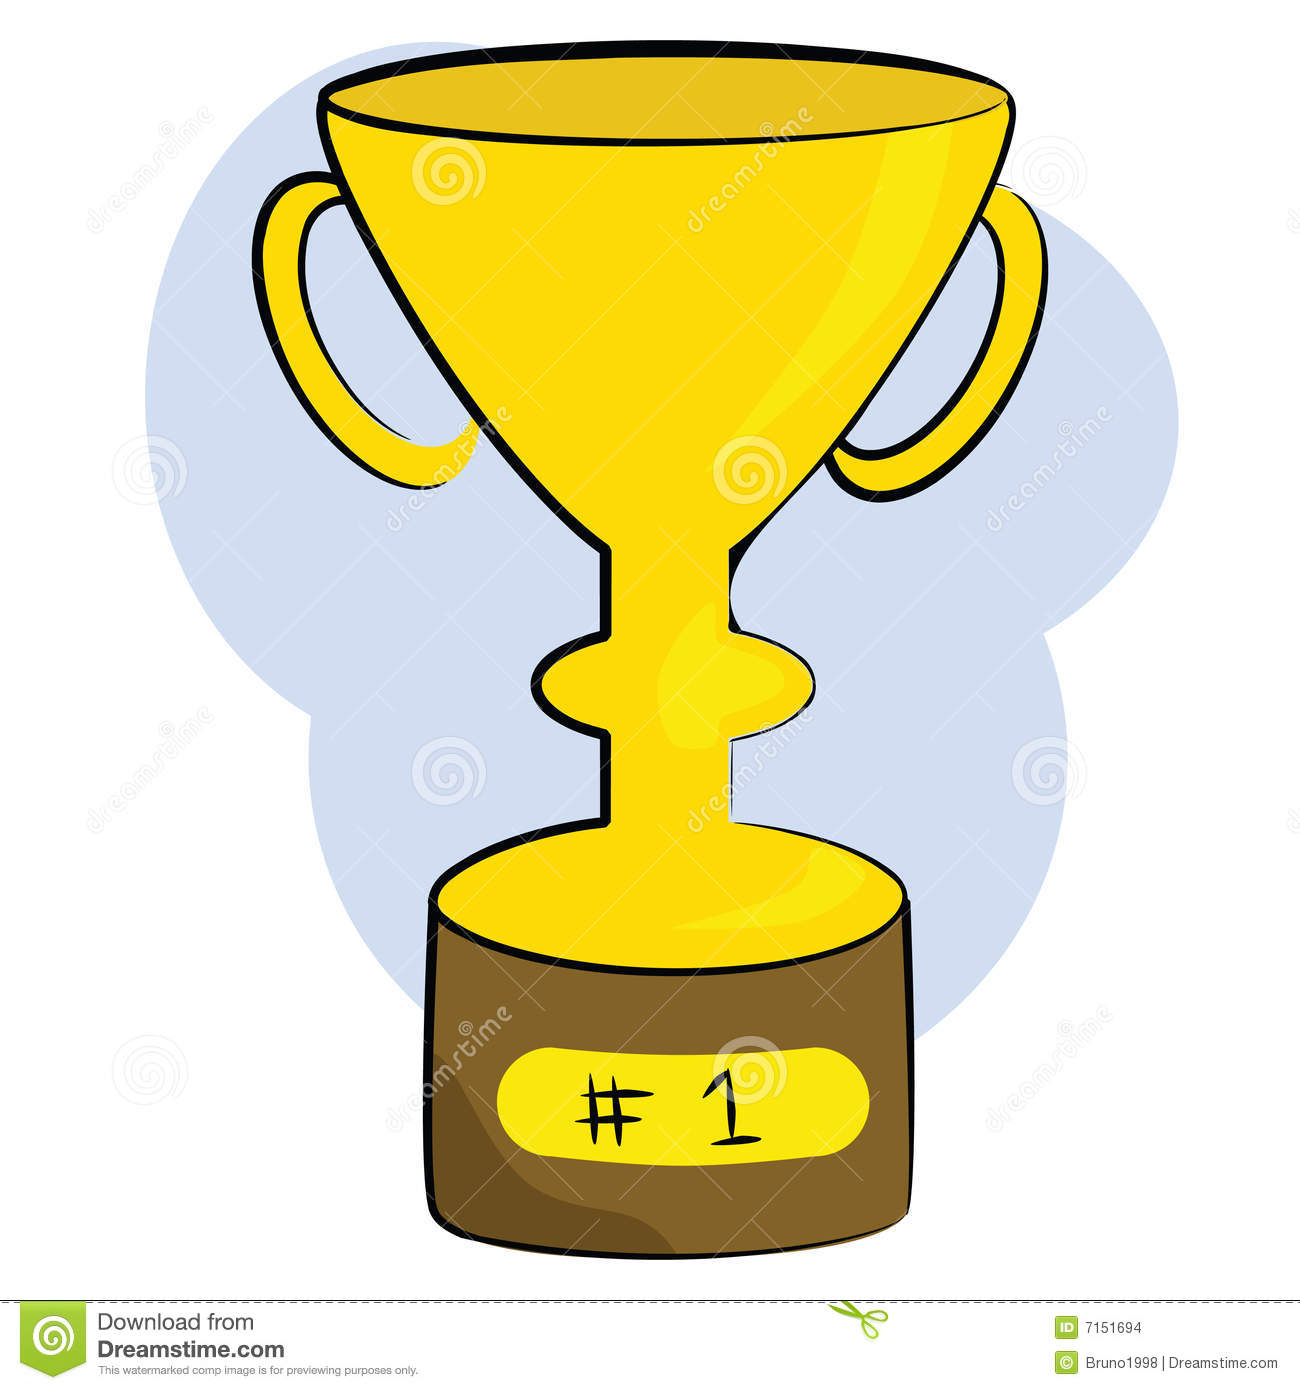 Number 1 trophy clipart clipart royalty free Number 1 Trophy Stock Images - Image: 7151694 clipart royalty free